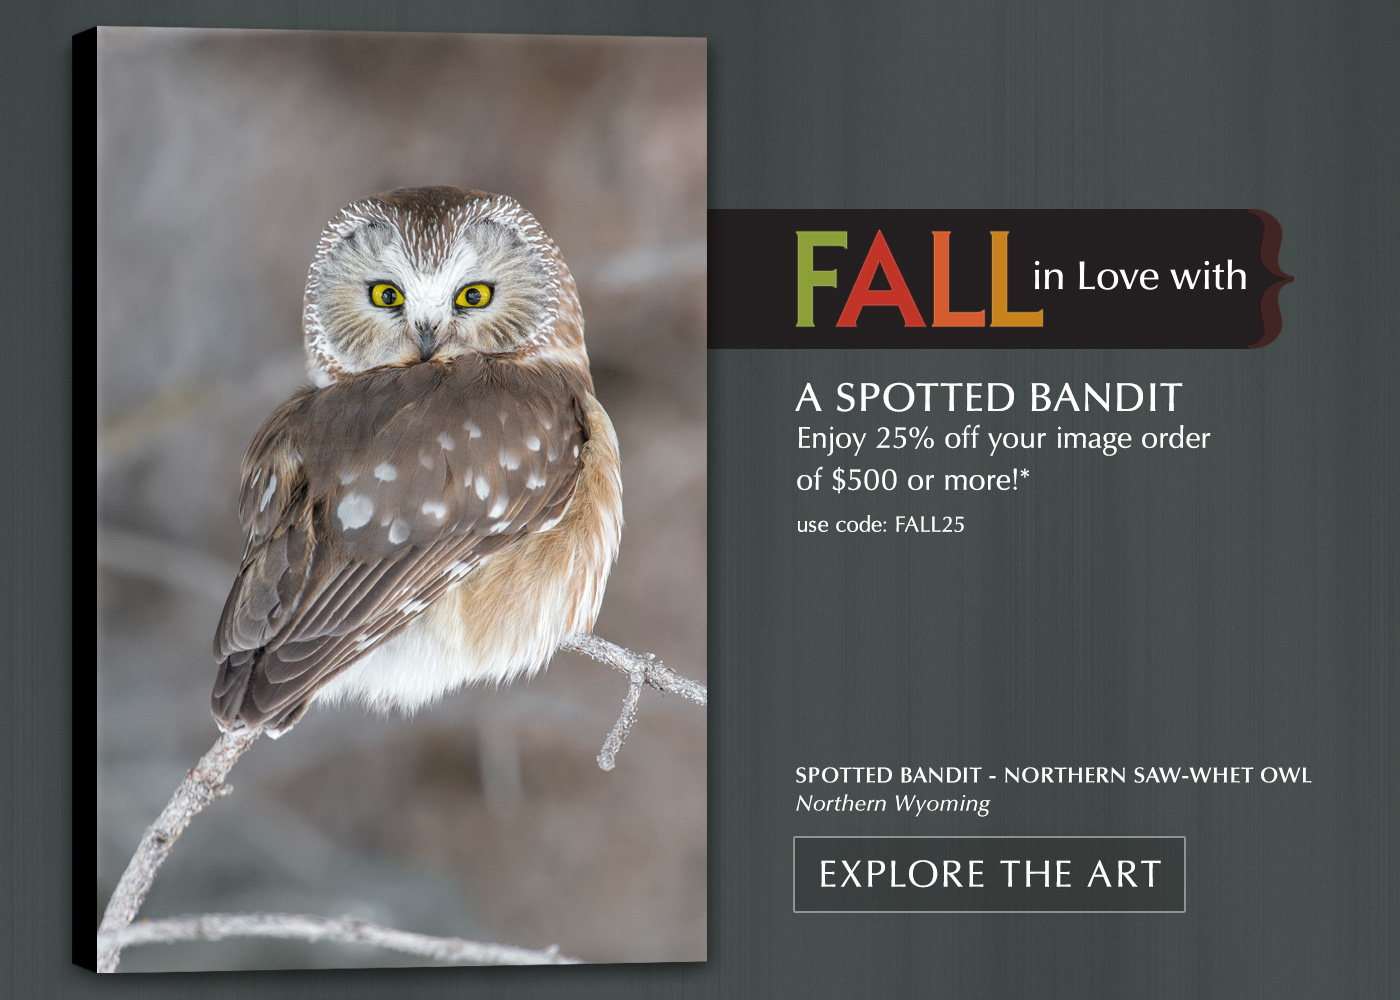 FALL in Love with a Spotted Bandit